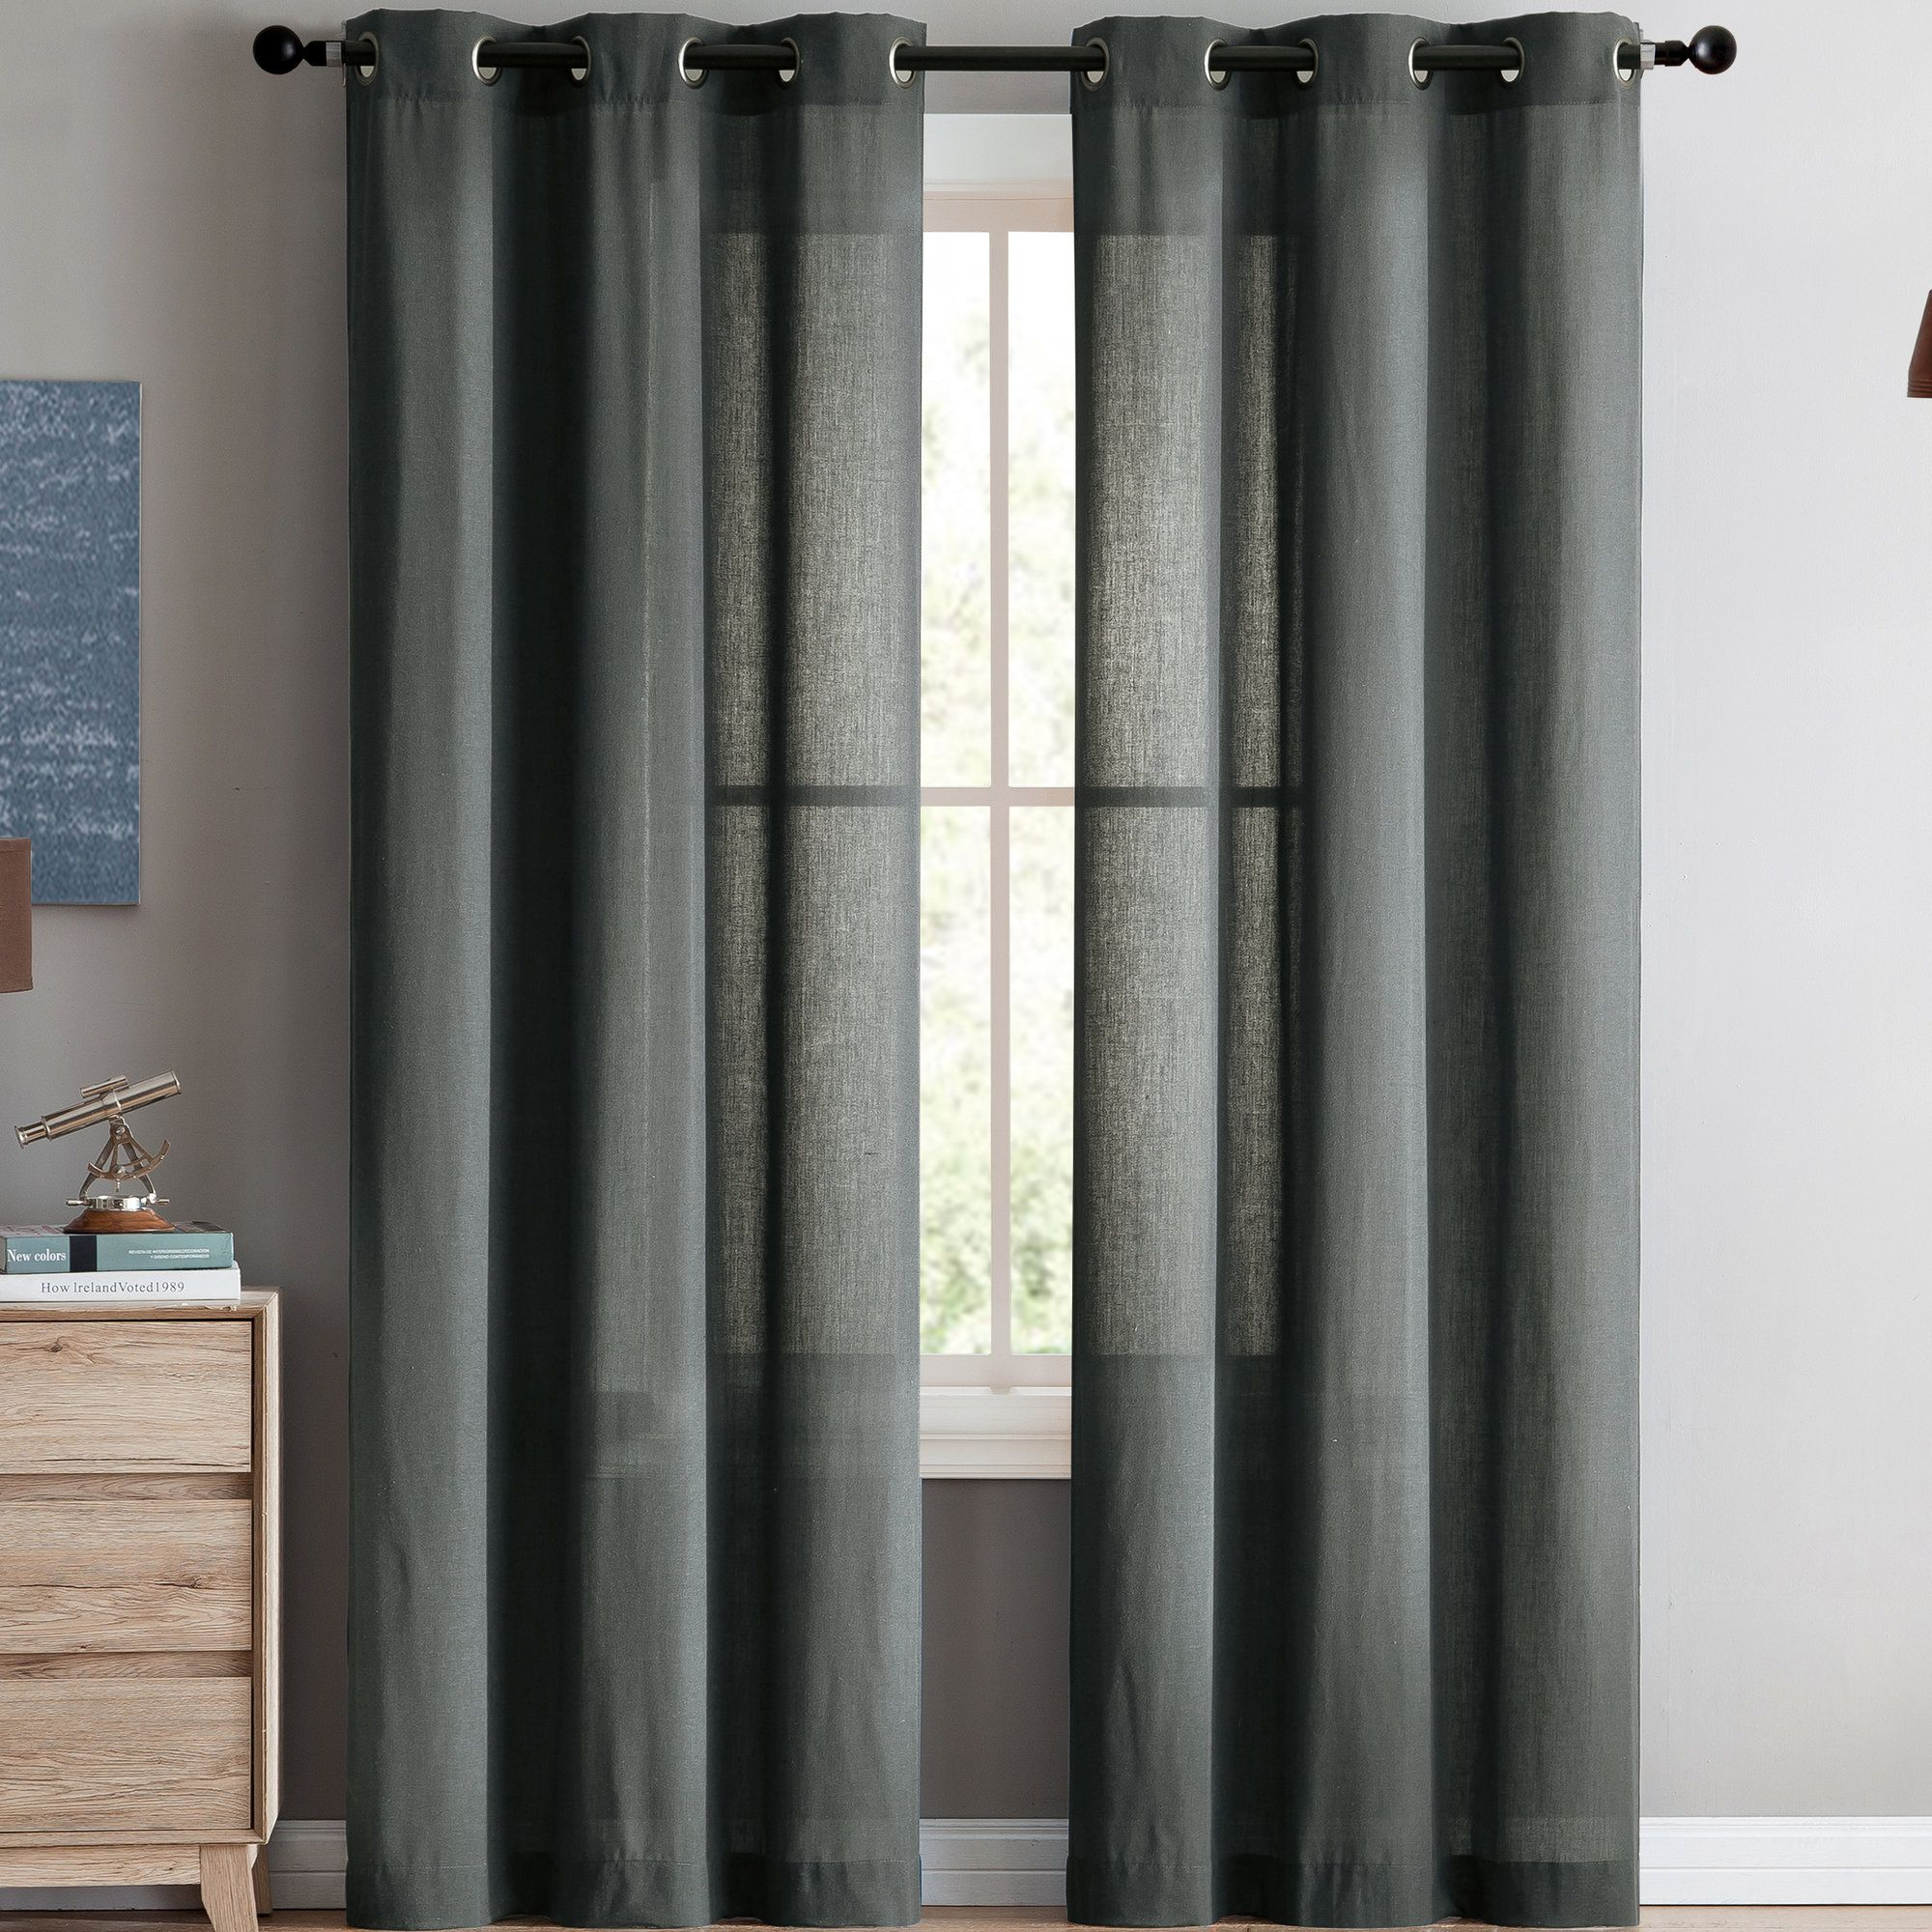 0c222425c2d3 Yanis Solid Semi-Sheer Grommet Curtain Panels | Products | Curtains ...